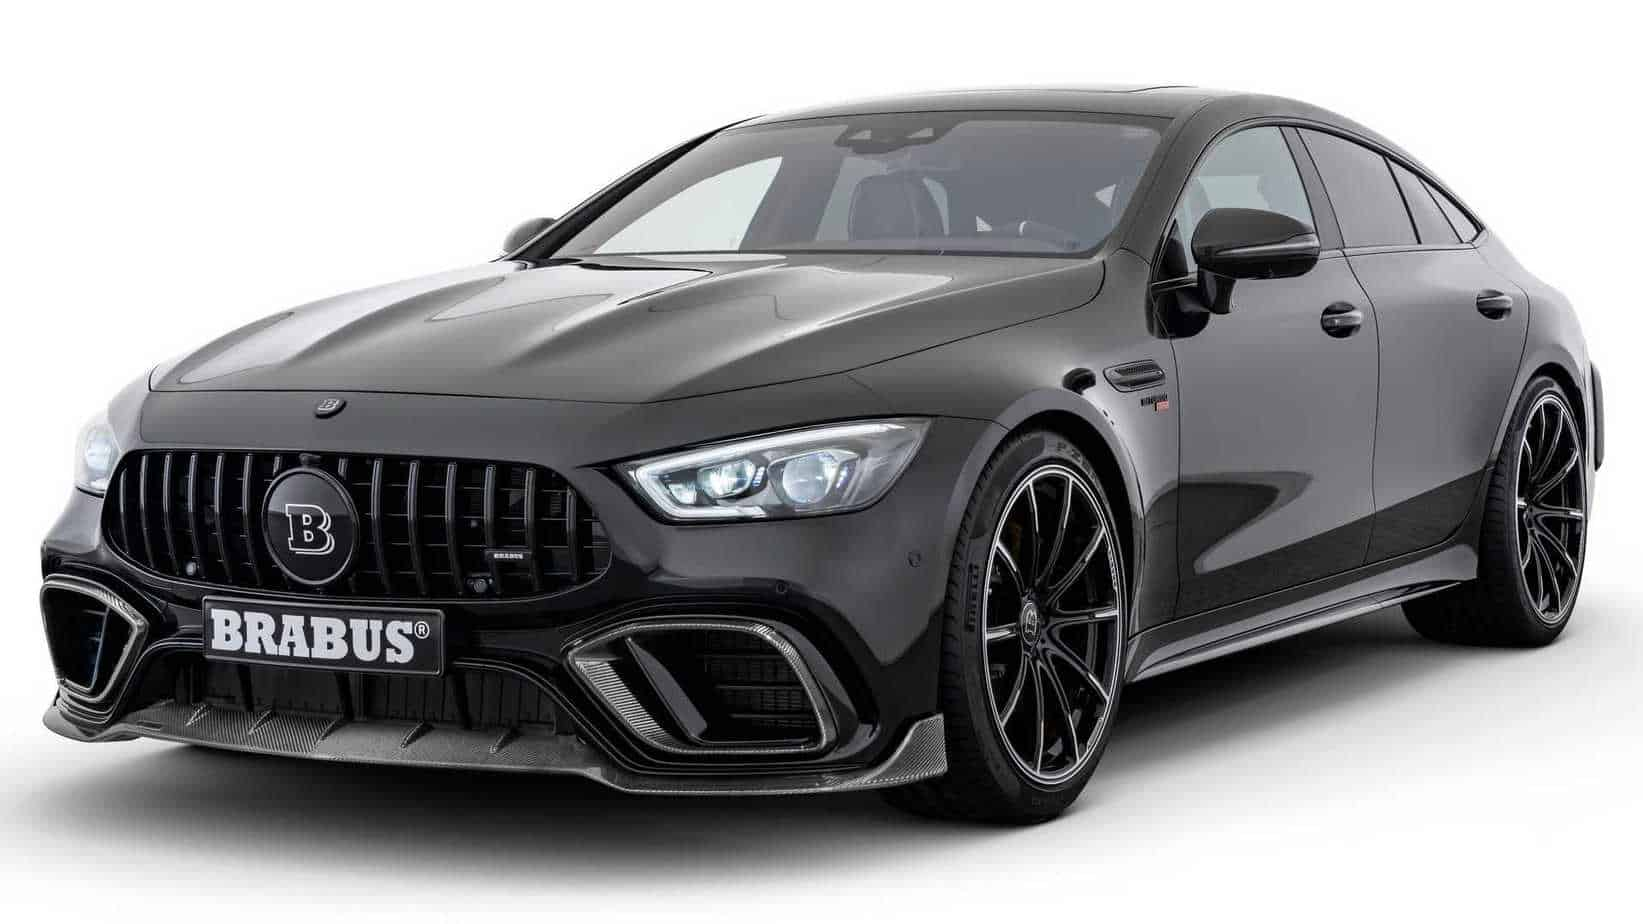 Brabus Mercedes-AMG GT63 S